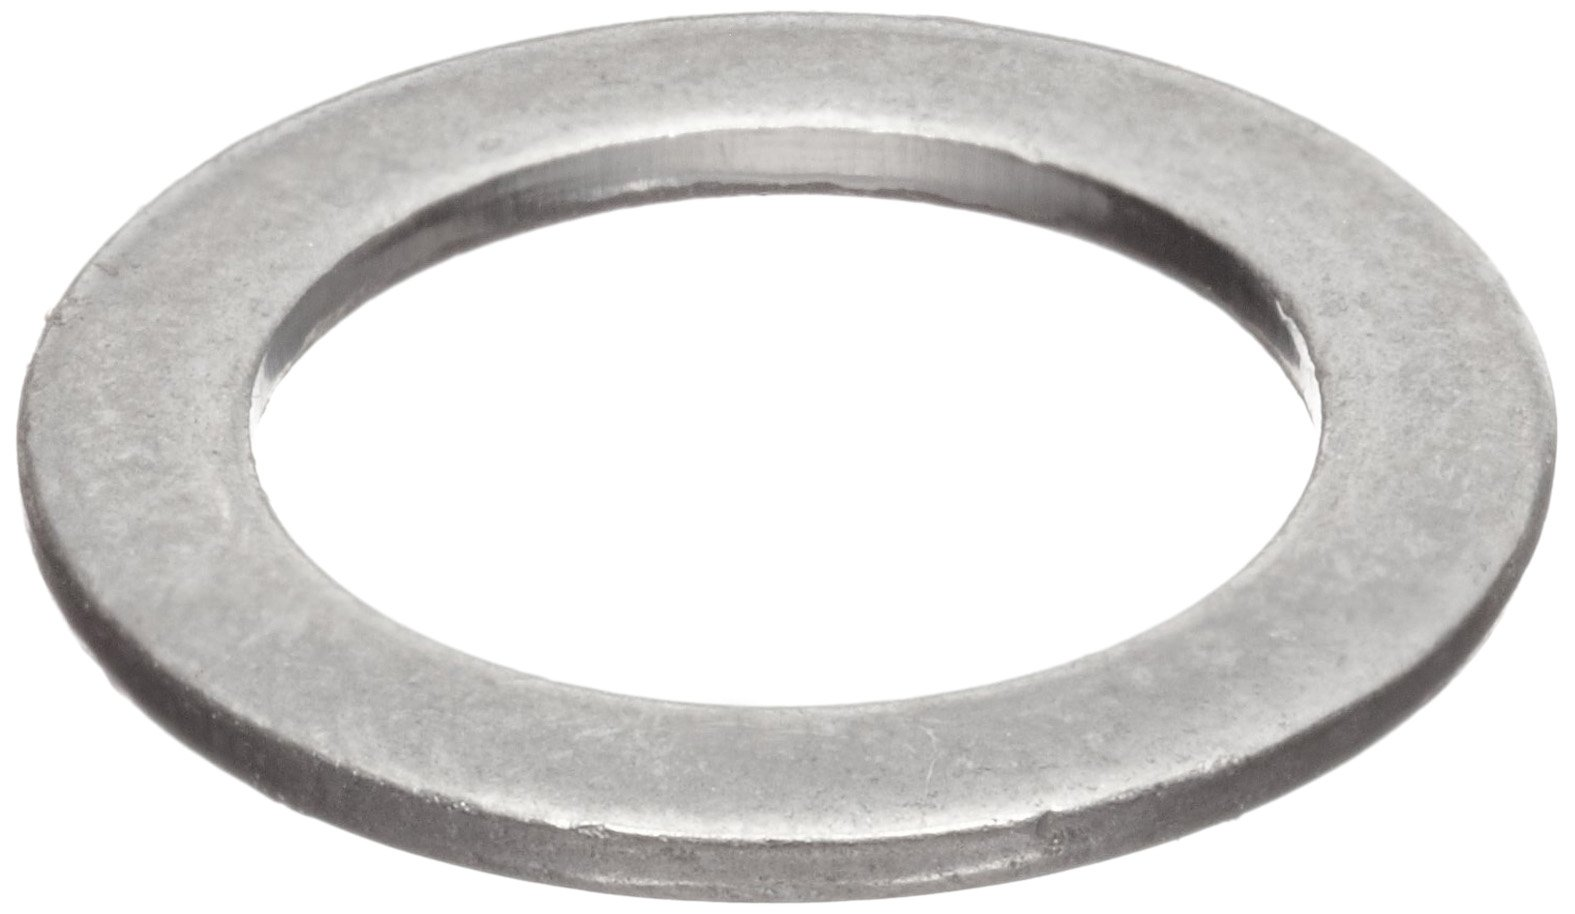 Shoulder-Shortening Shim Flat Washer, 18-8 Stainless Steel, 1/2'' Bolt Size, 0.501'' ID.750'' OD, 0.030'' Thick (Pack of 50)